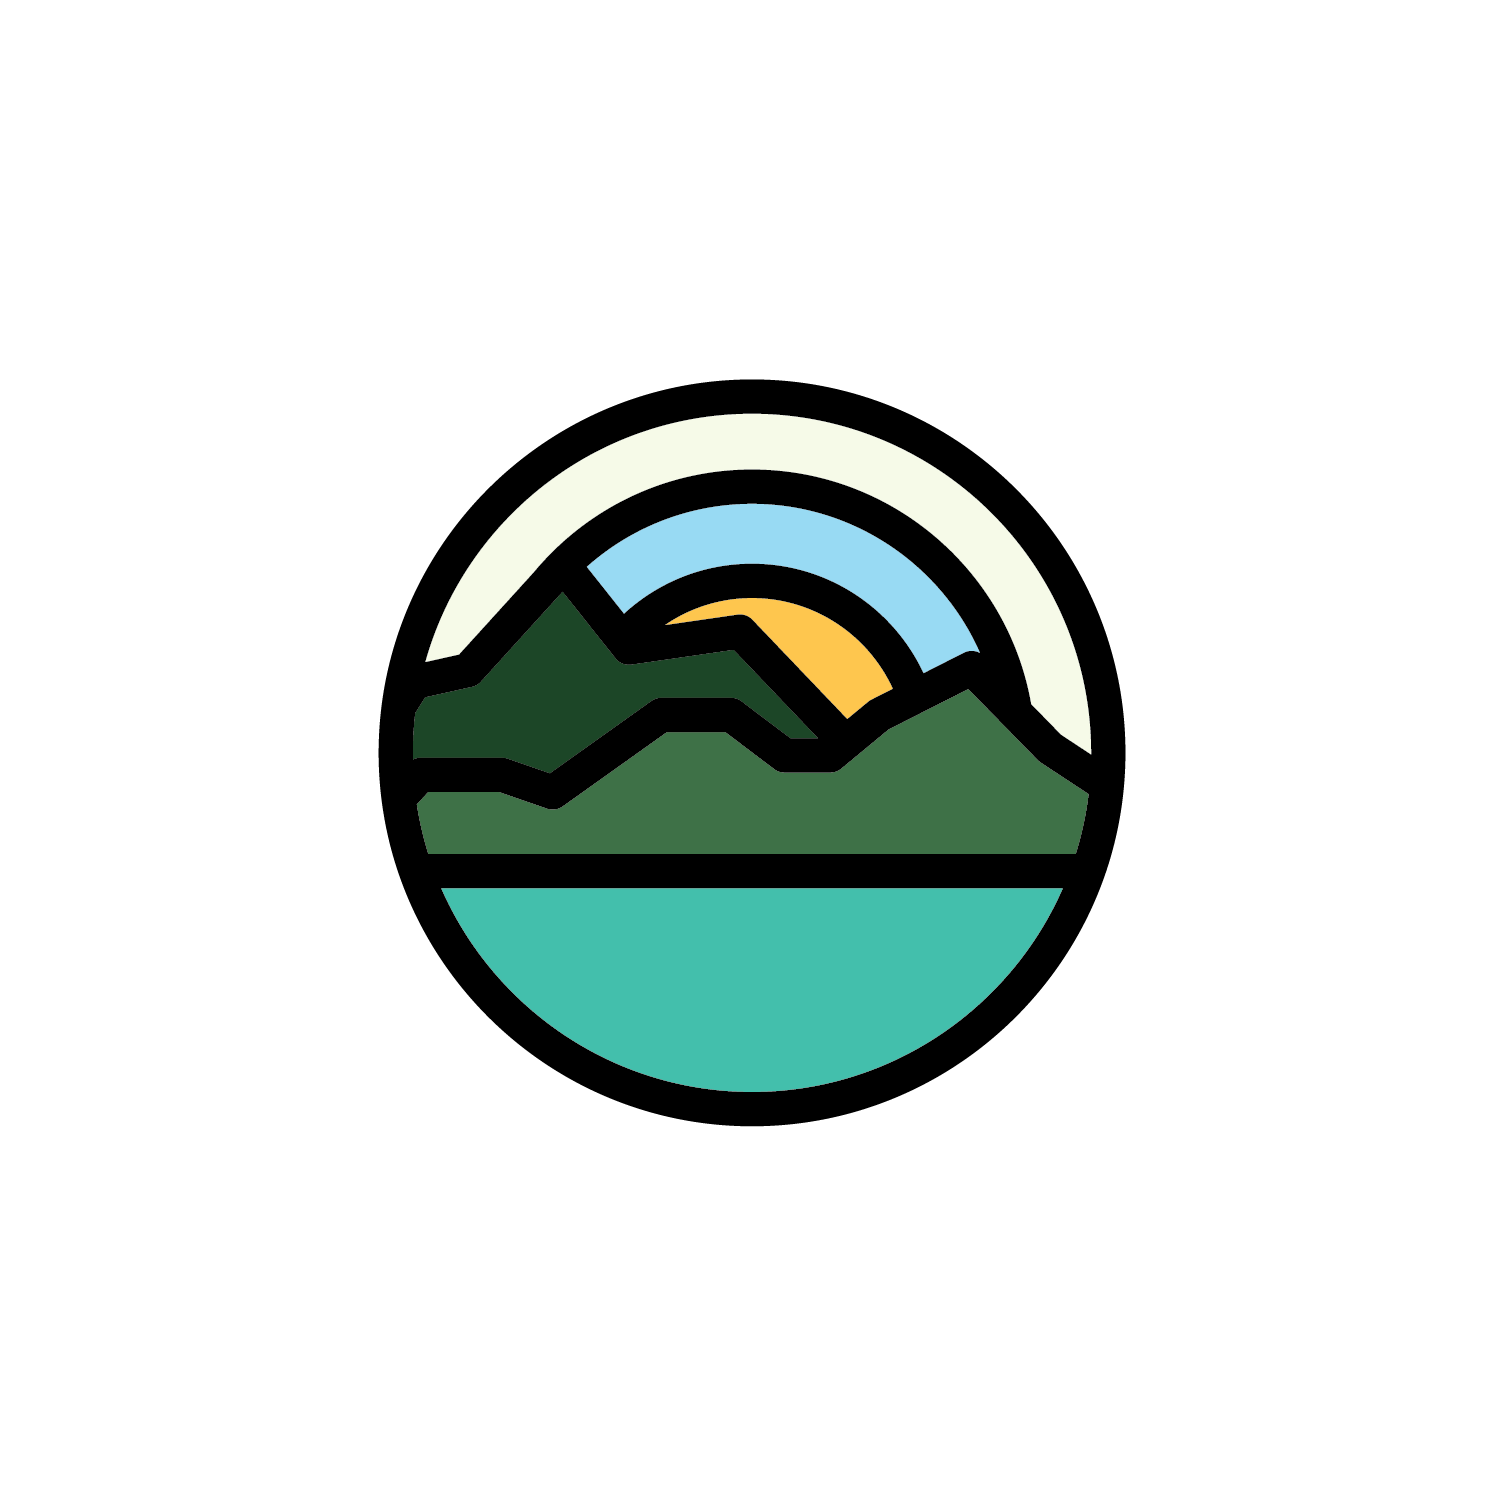 HHD_Scotts Flat Icon-01.png